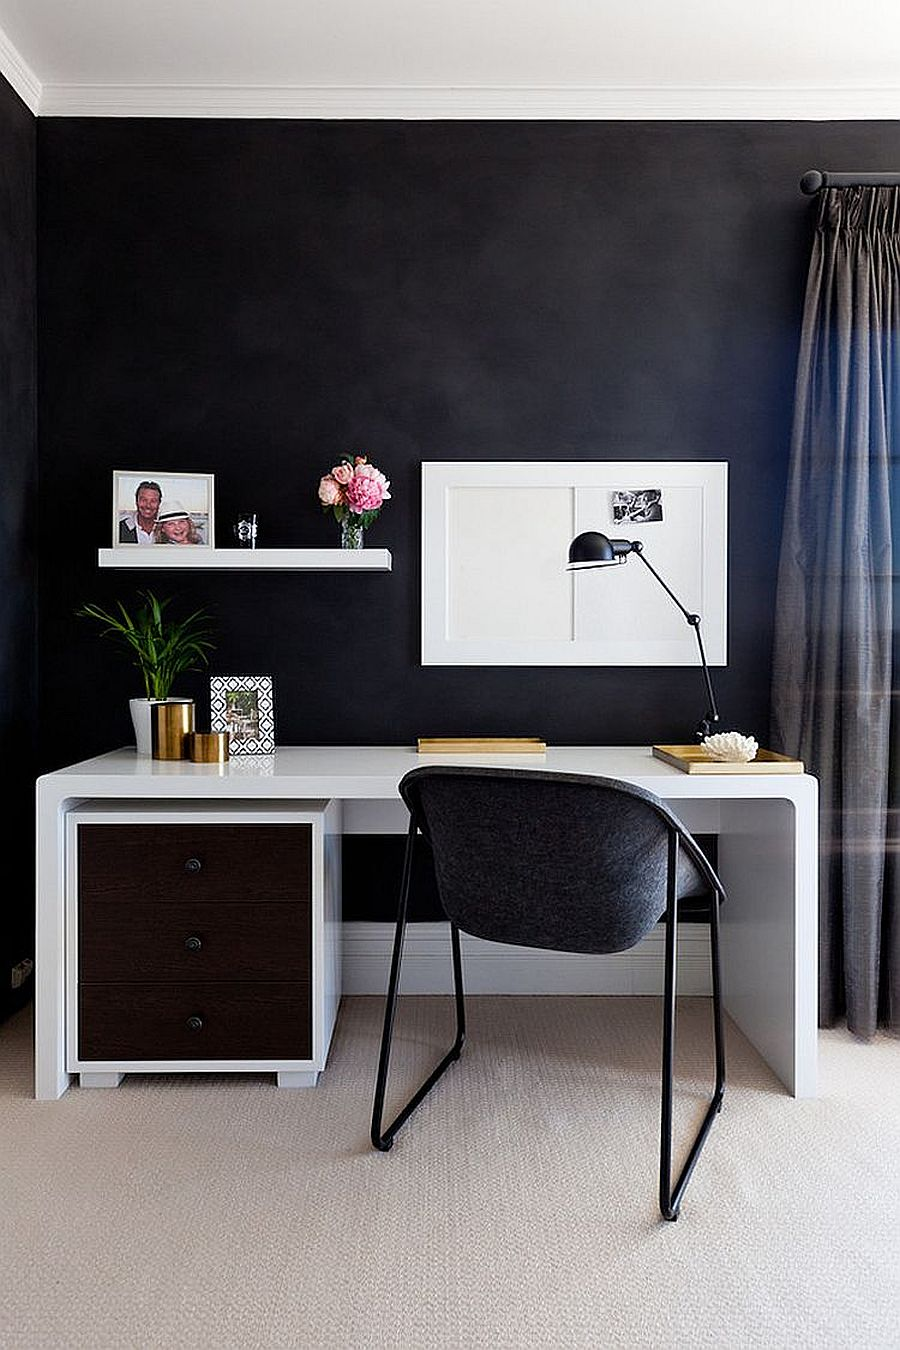 Textured-walls-in-black-for-the-space-savvy-modern-home-office-39233